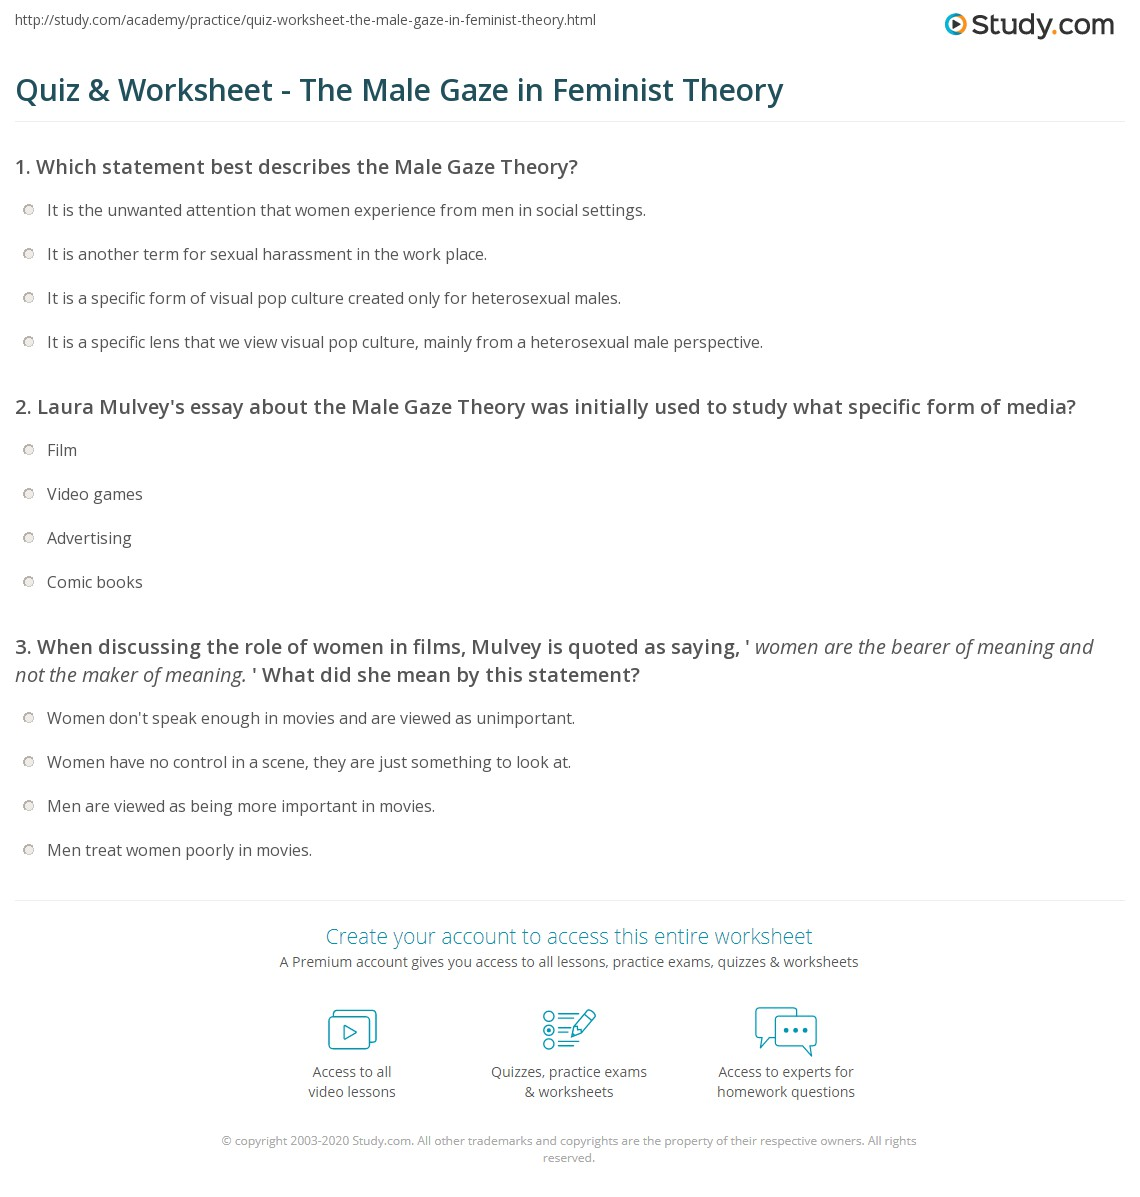 https://study.com/academy/practice/quiz-worksheet-the-male-gaze-in-feminist-theory.jpg